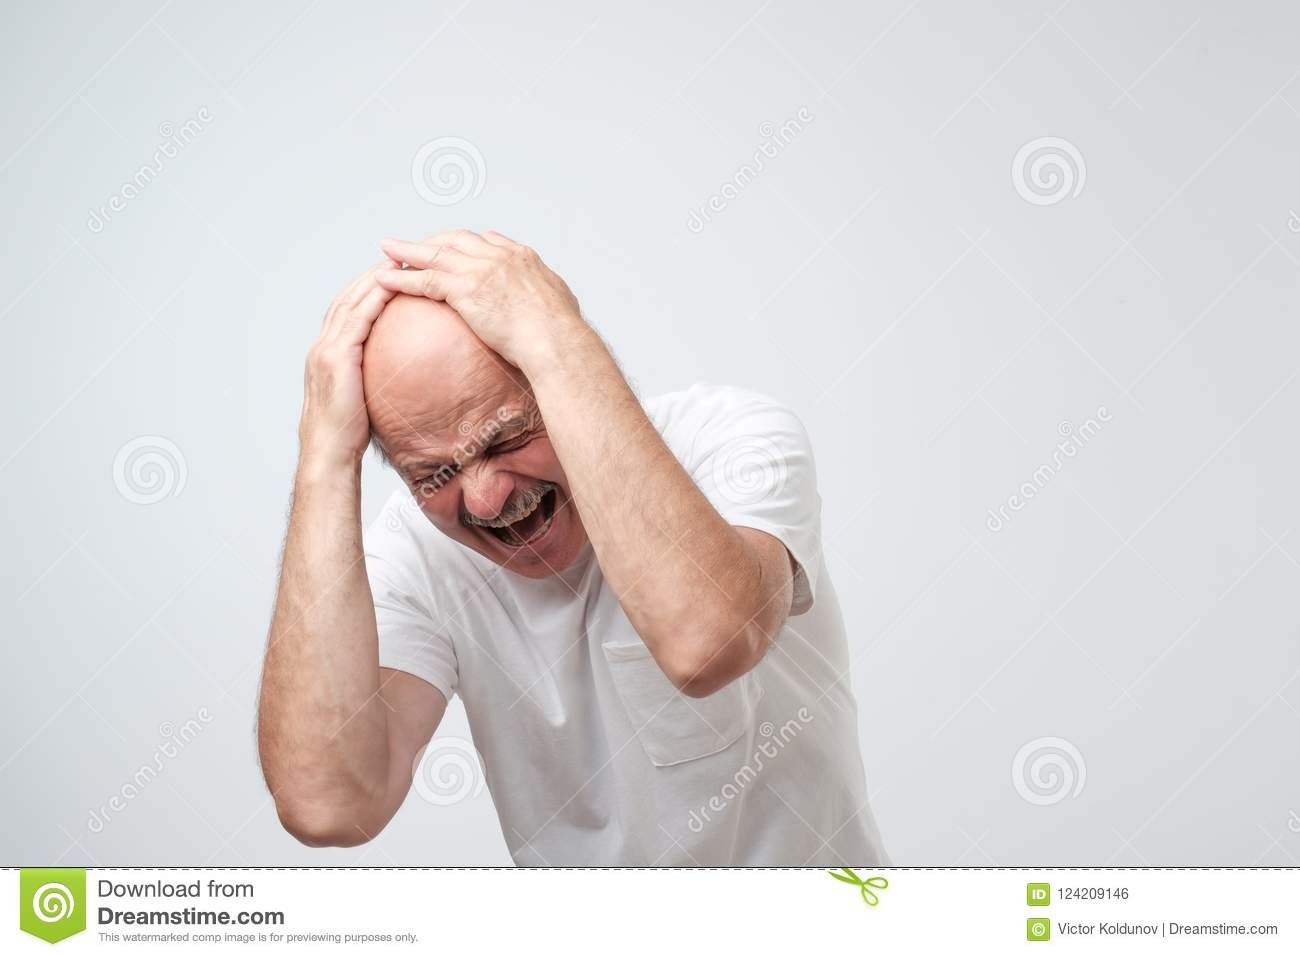 Portrait Mature Hispanic Desperate Man Holding His Head In Pain Stock Photo Image Of Holding Face 124209146 I once went to a fortune teller to get my future read. https www dreamstime com portrait mature hispanic desperate man holding his head pain standing near wall portrait mature hispanic desperate man image124209146